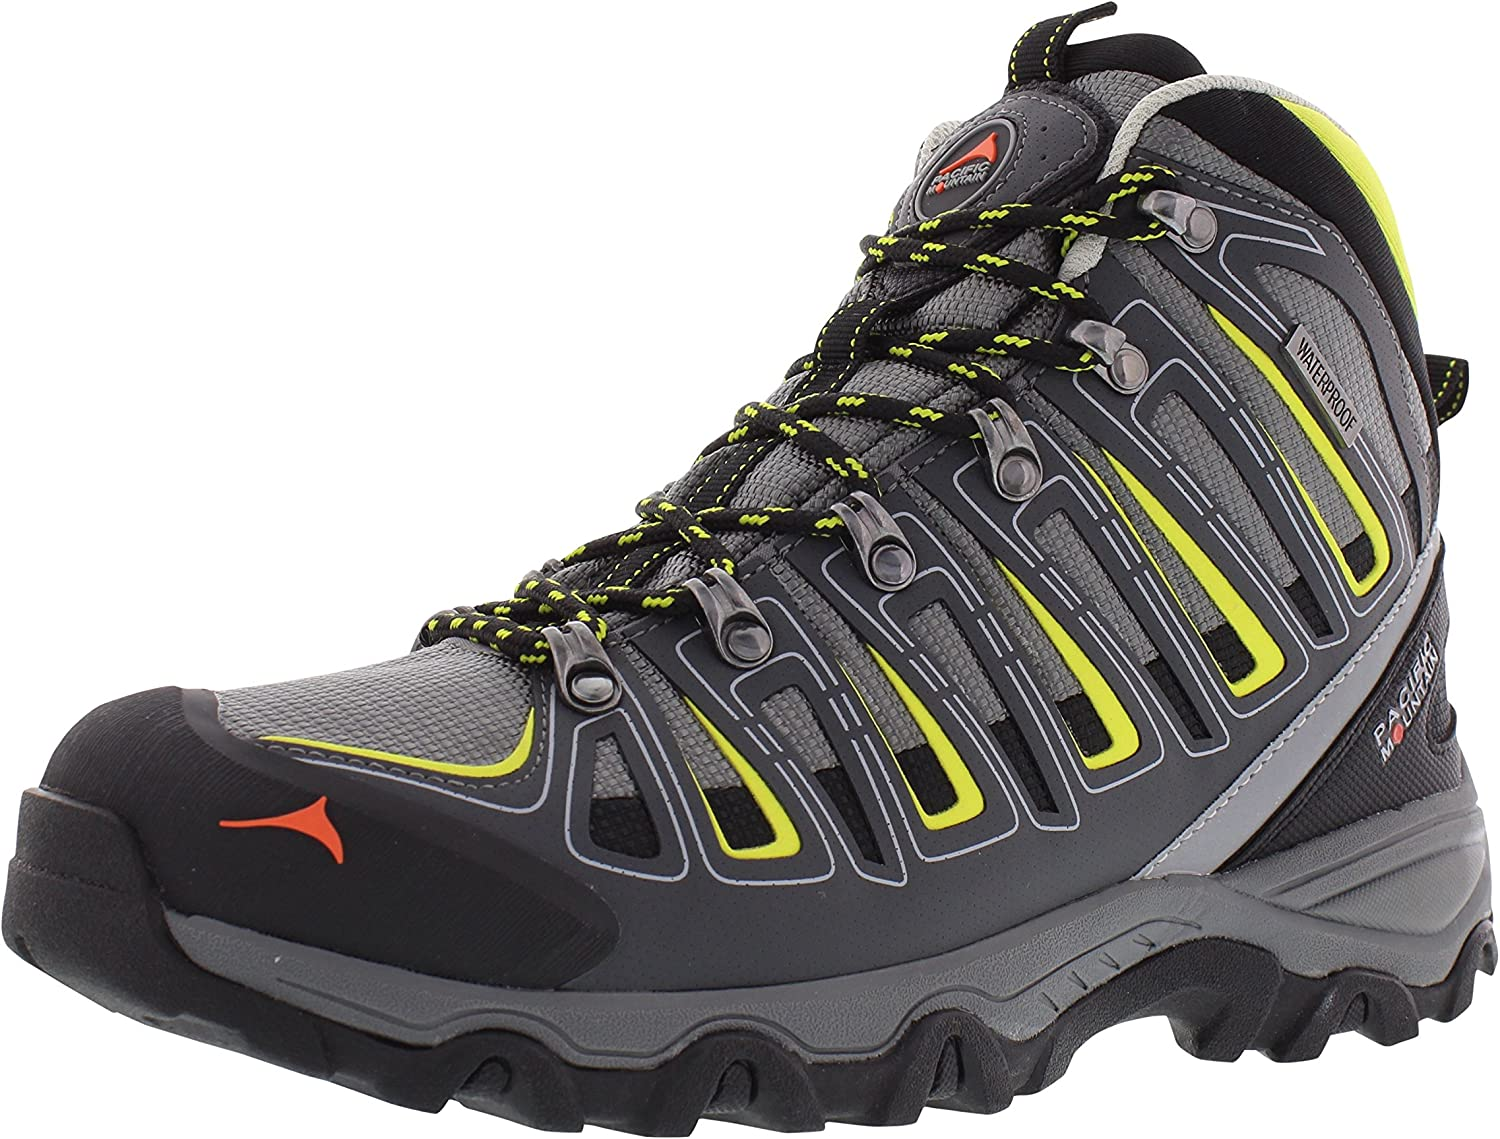 Pacific Mountain Incline Mens Waterproof Hiking Backpacking